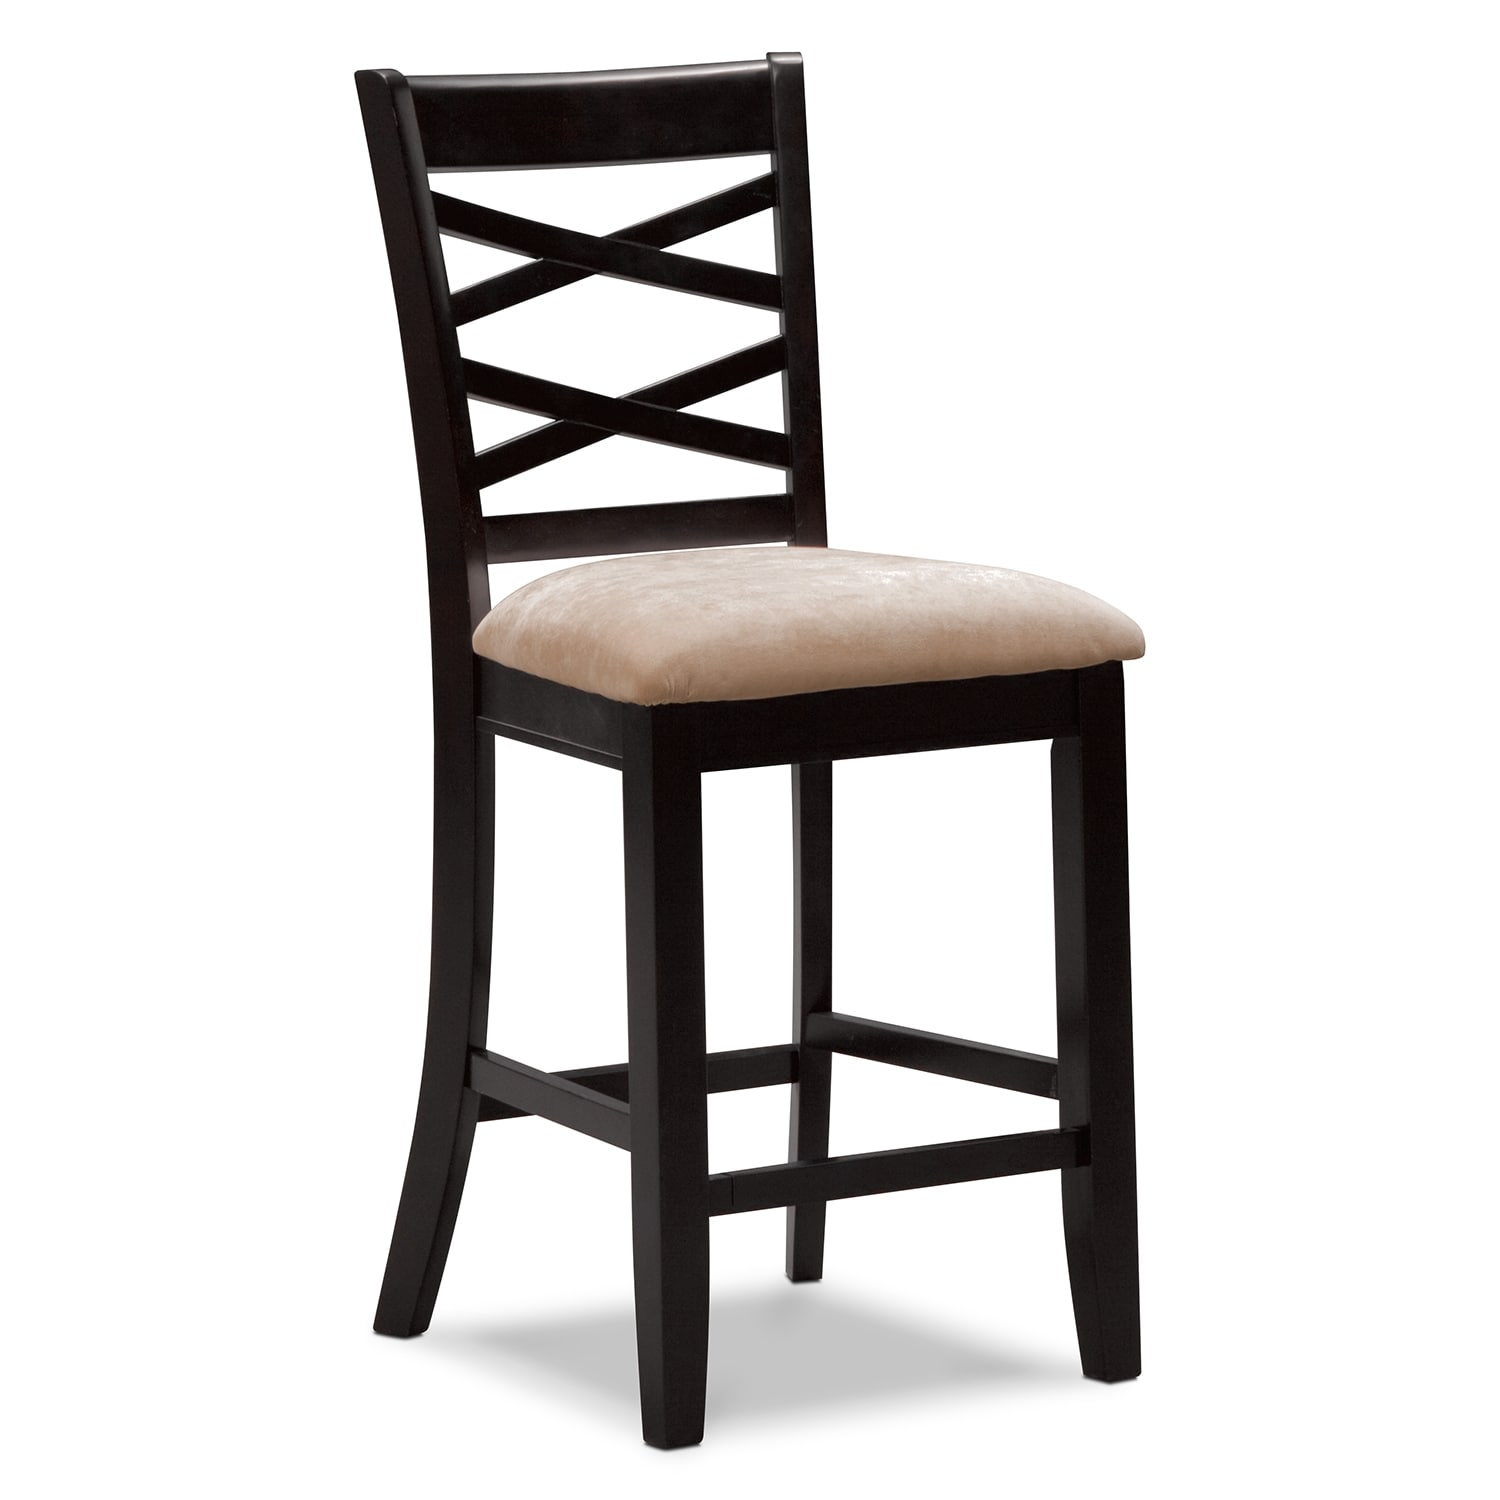 Dining Room Furniture - Americana Espresso Counter-Height Stool